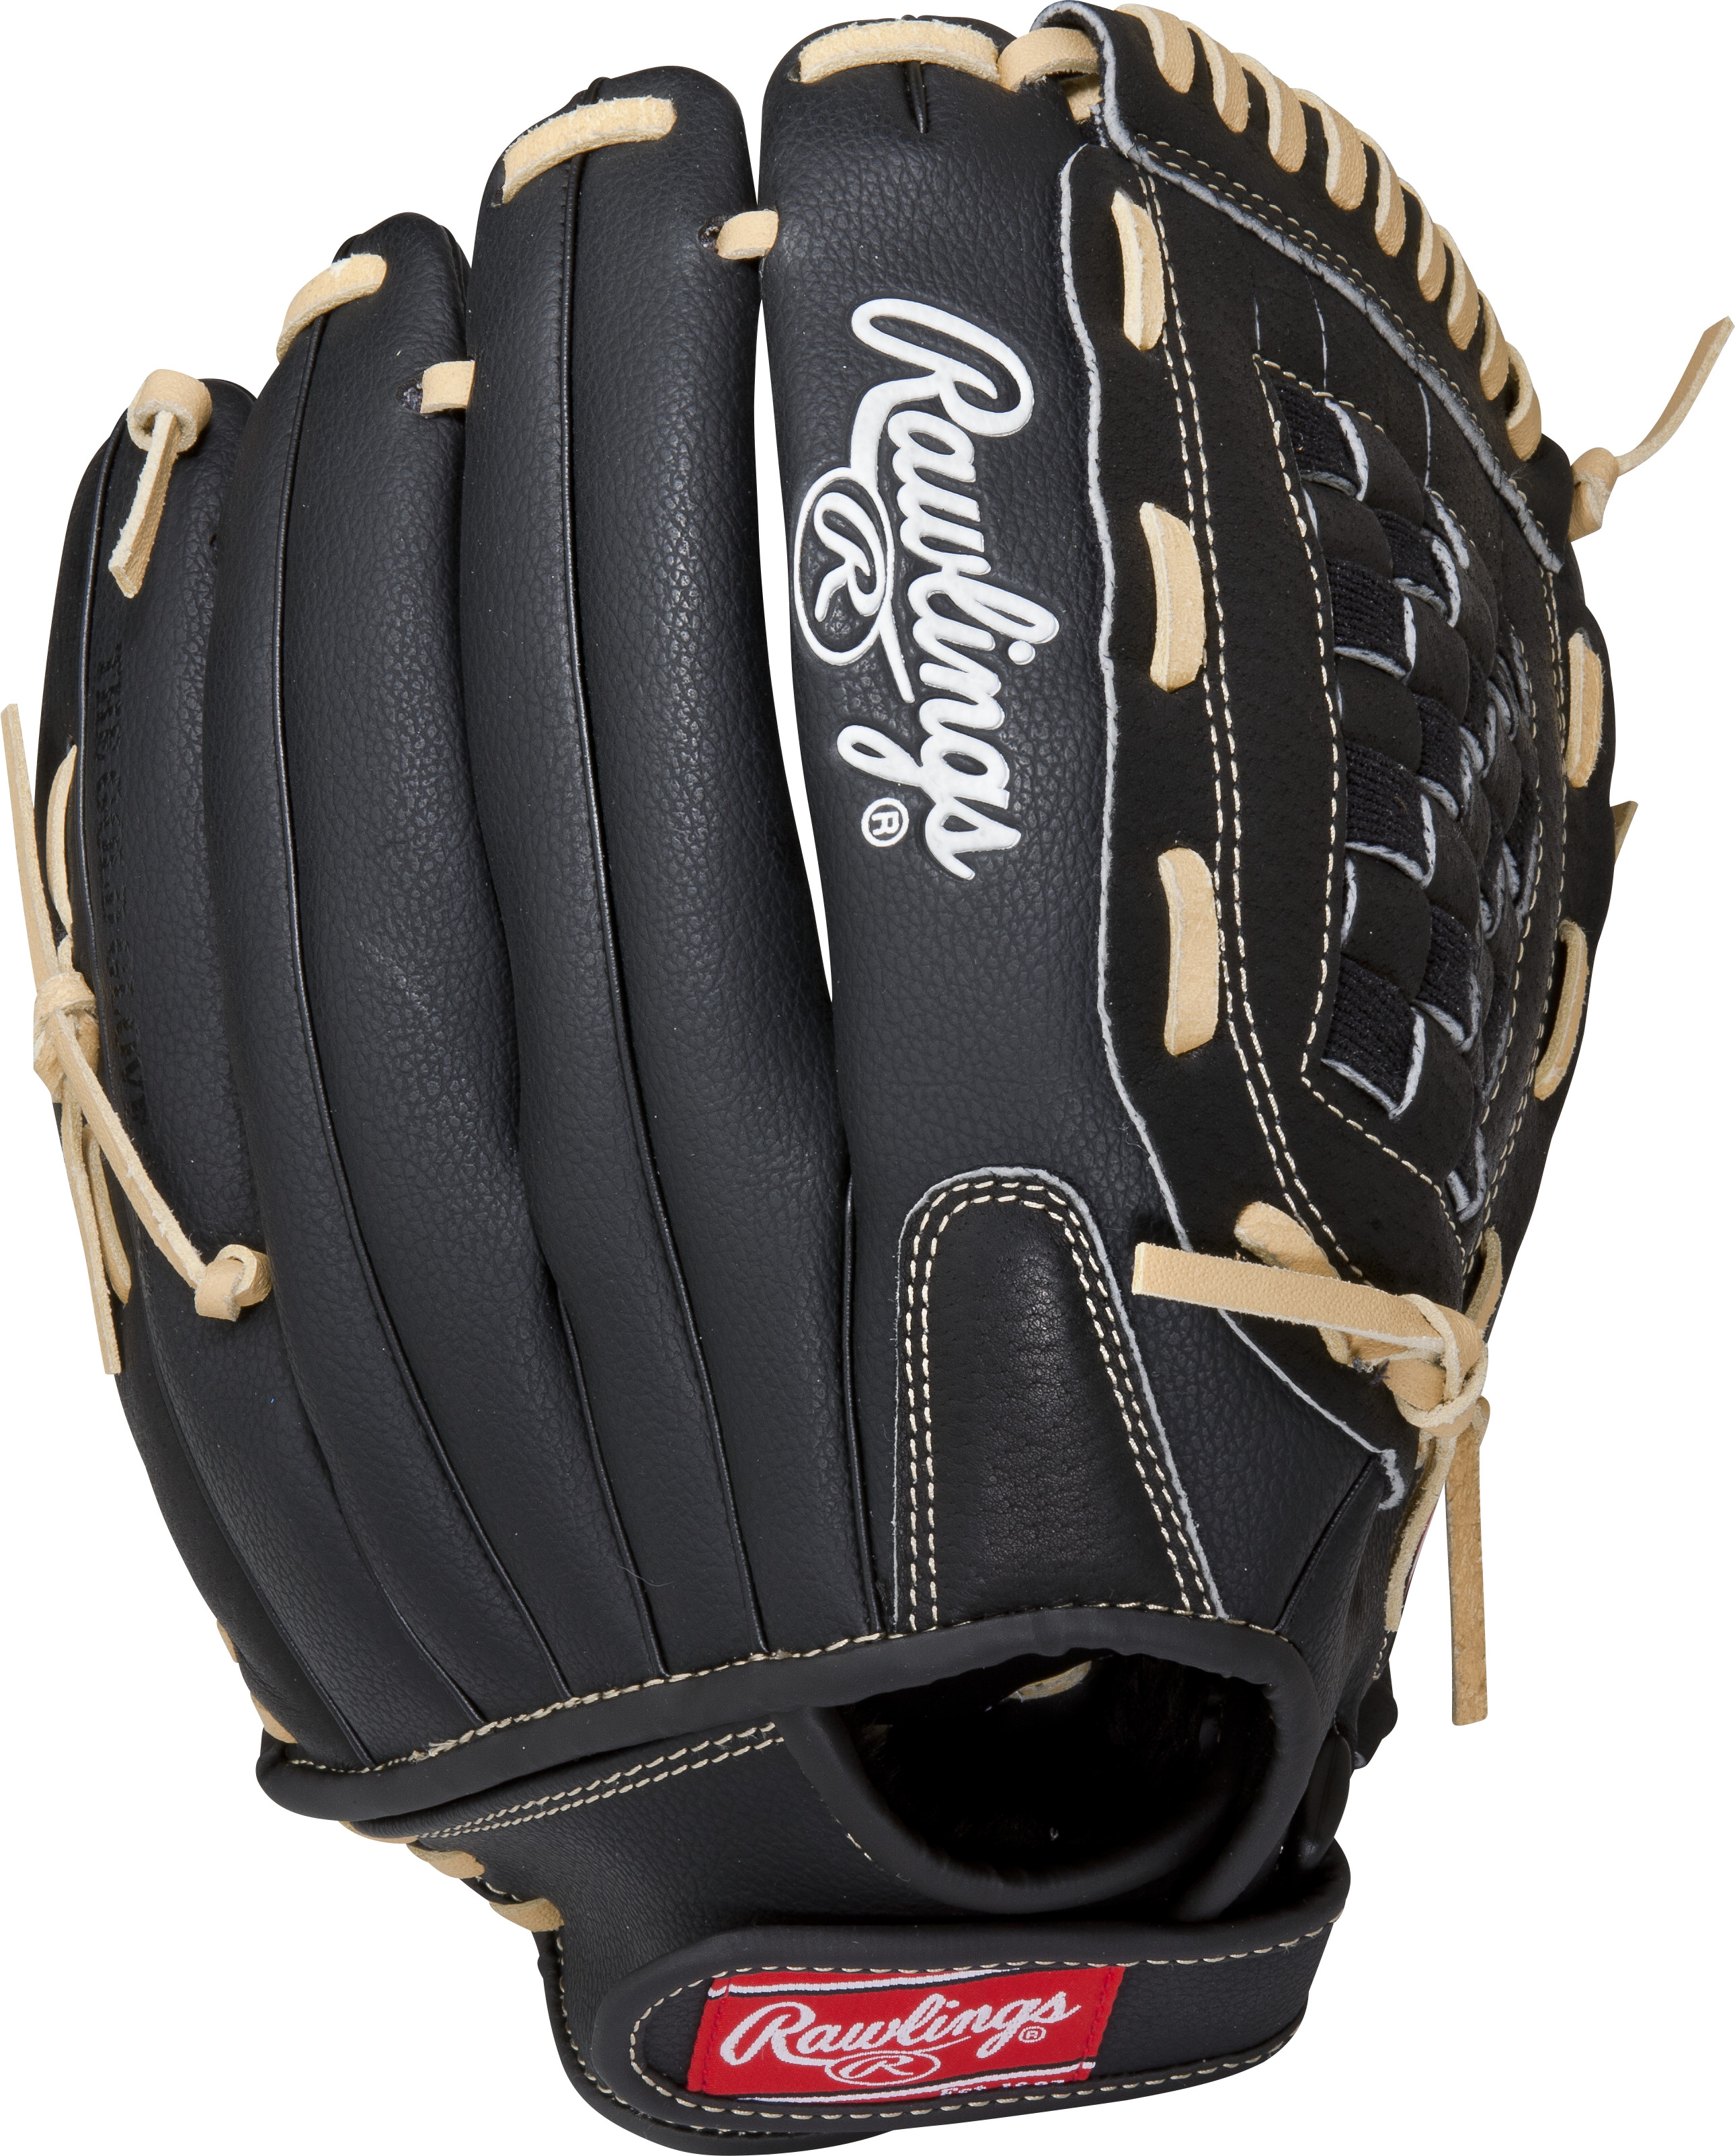 http://www.bestbatdeals.com/images/gloves/rawlings/RSS130C_back.jpg